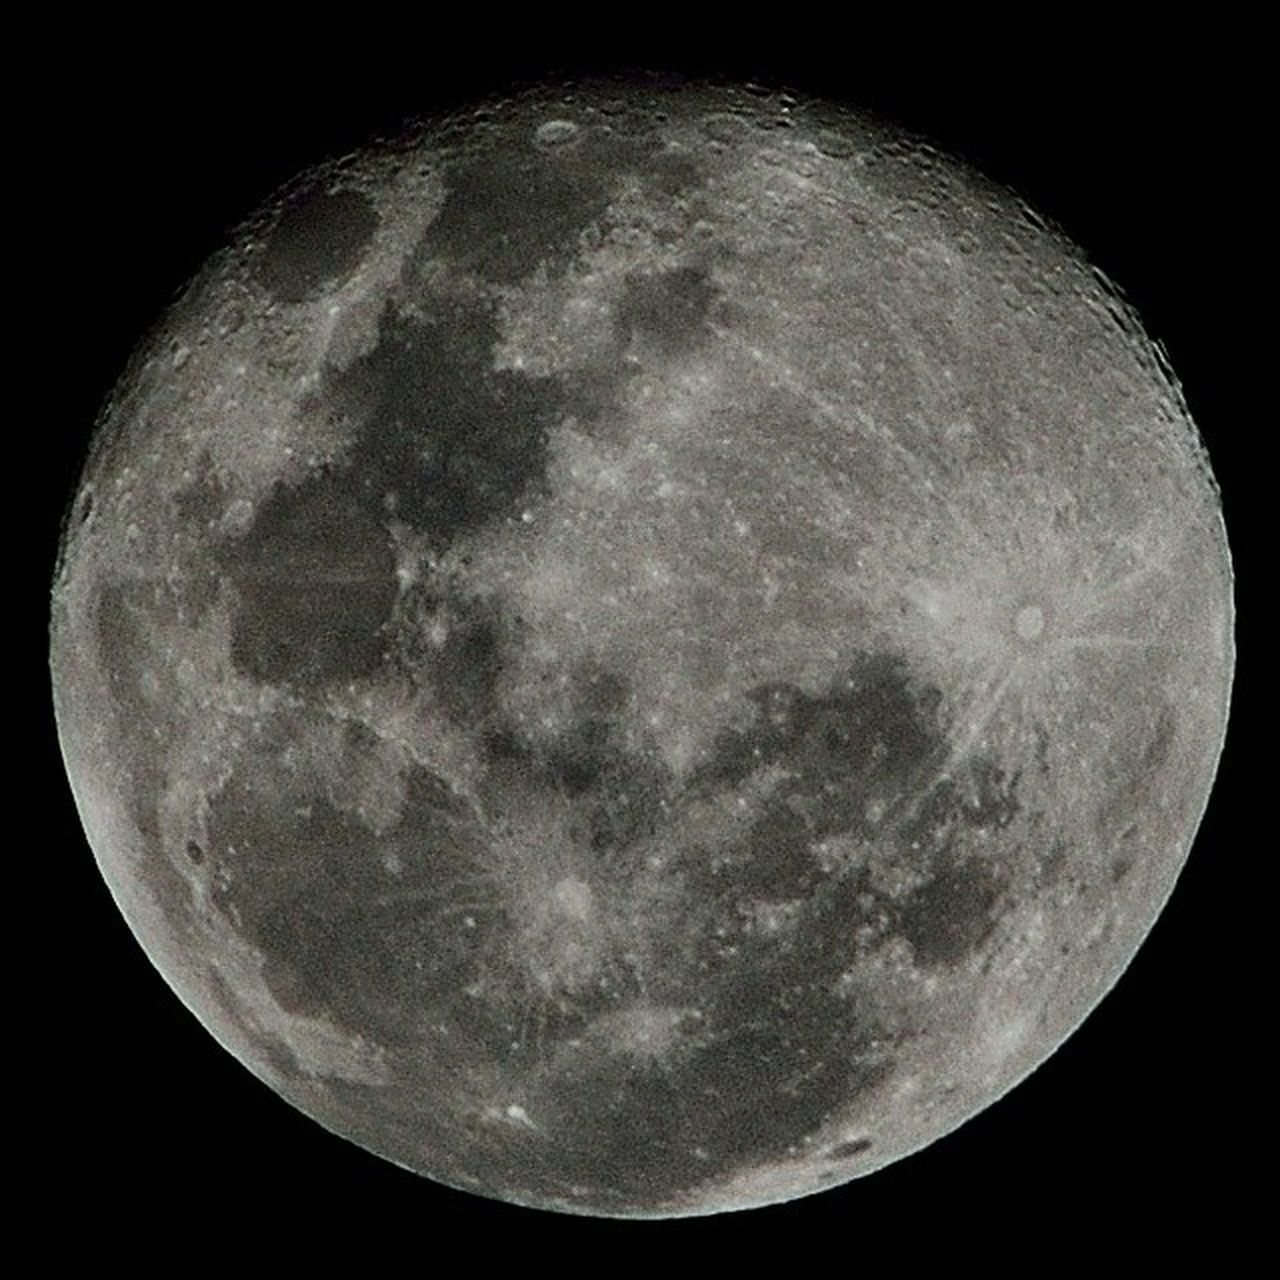 moon, night, astronomy, moon surface, planetary moon, full moon, majestic, circle, beauty in nature, space exploration, scenics, nature, space, tranquil scene, tranquility, sky, discovery, exploration, half moon, no people, outdoors, moonlight, close-up, clear sky, star - space, satellite view